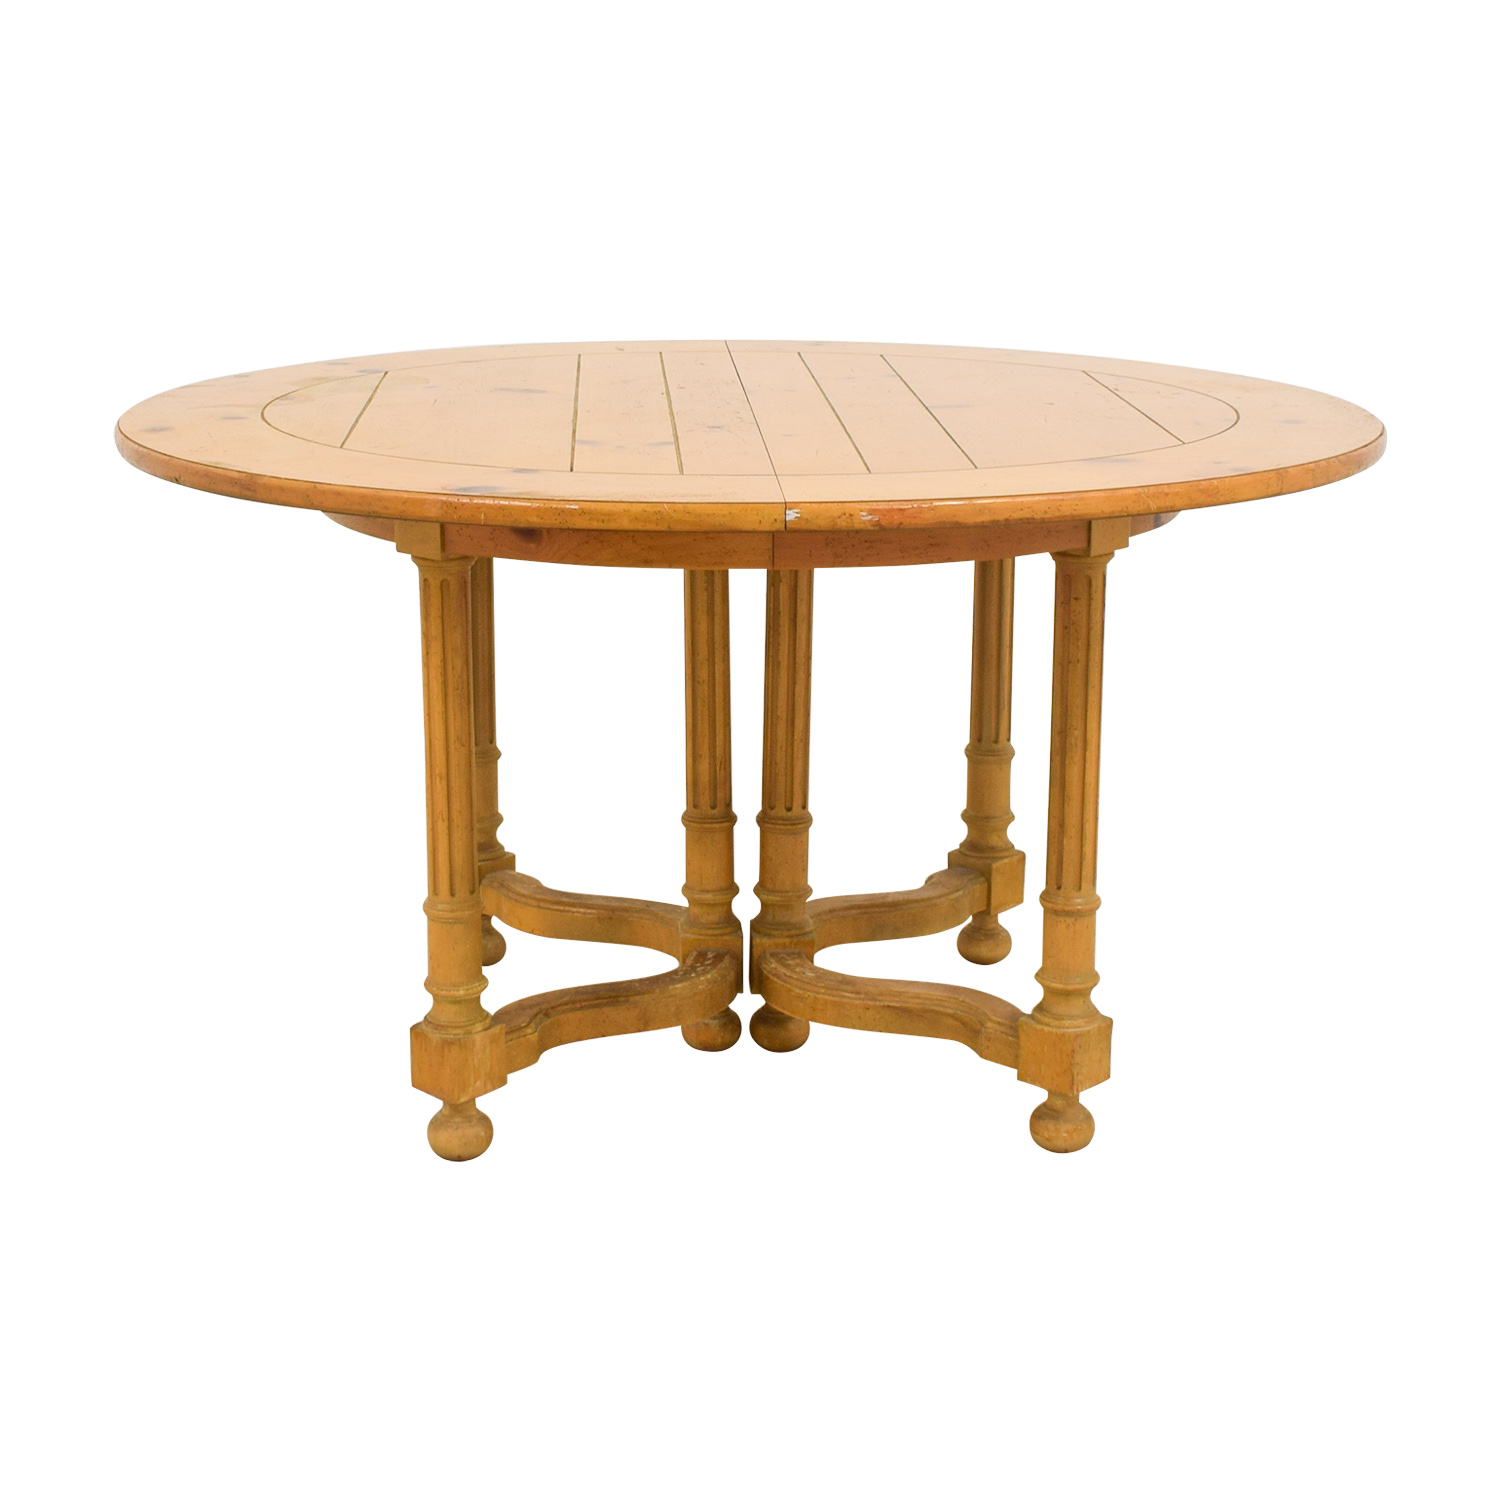 90 Off Baker Furniture Milling Road Natural Round Table With Leaf Tables